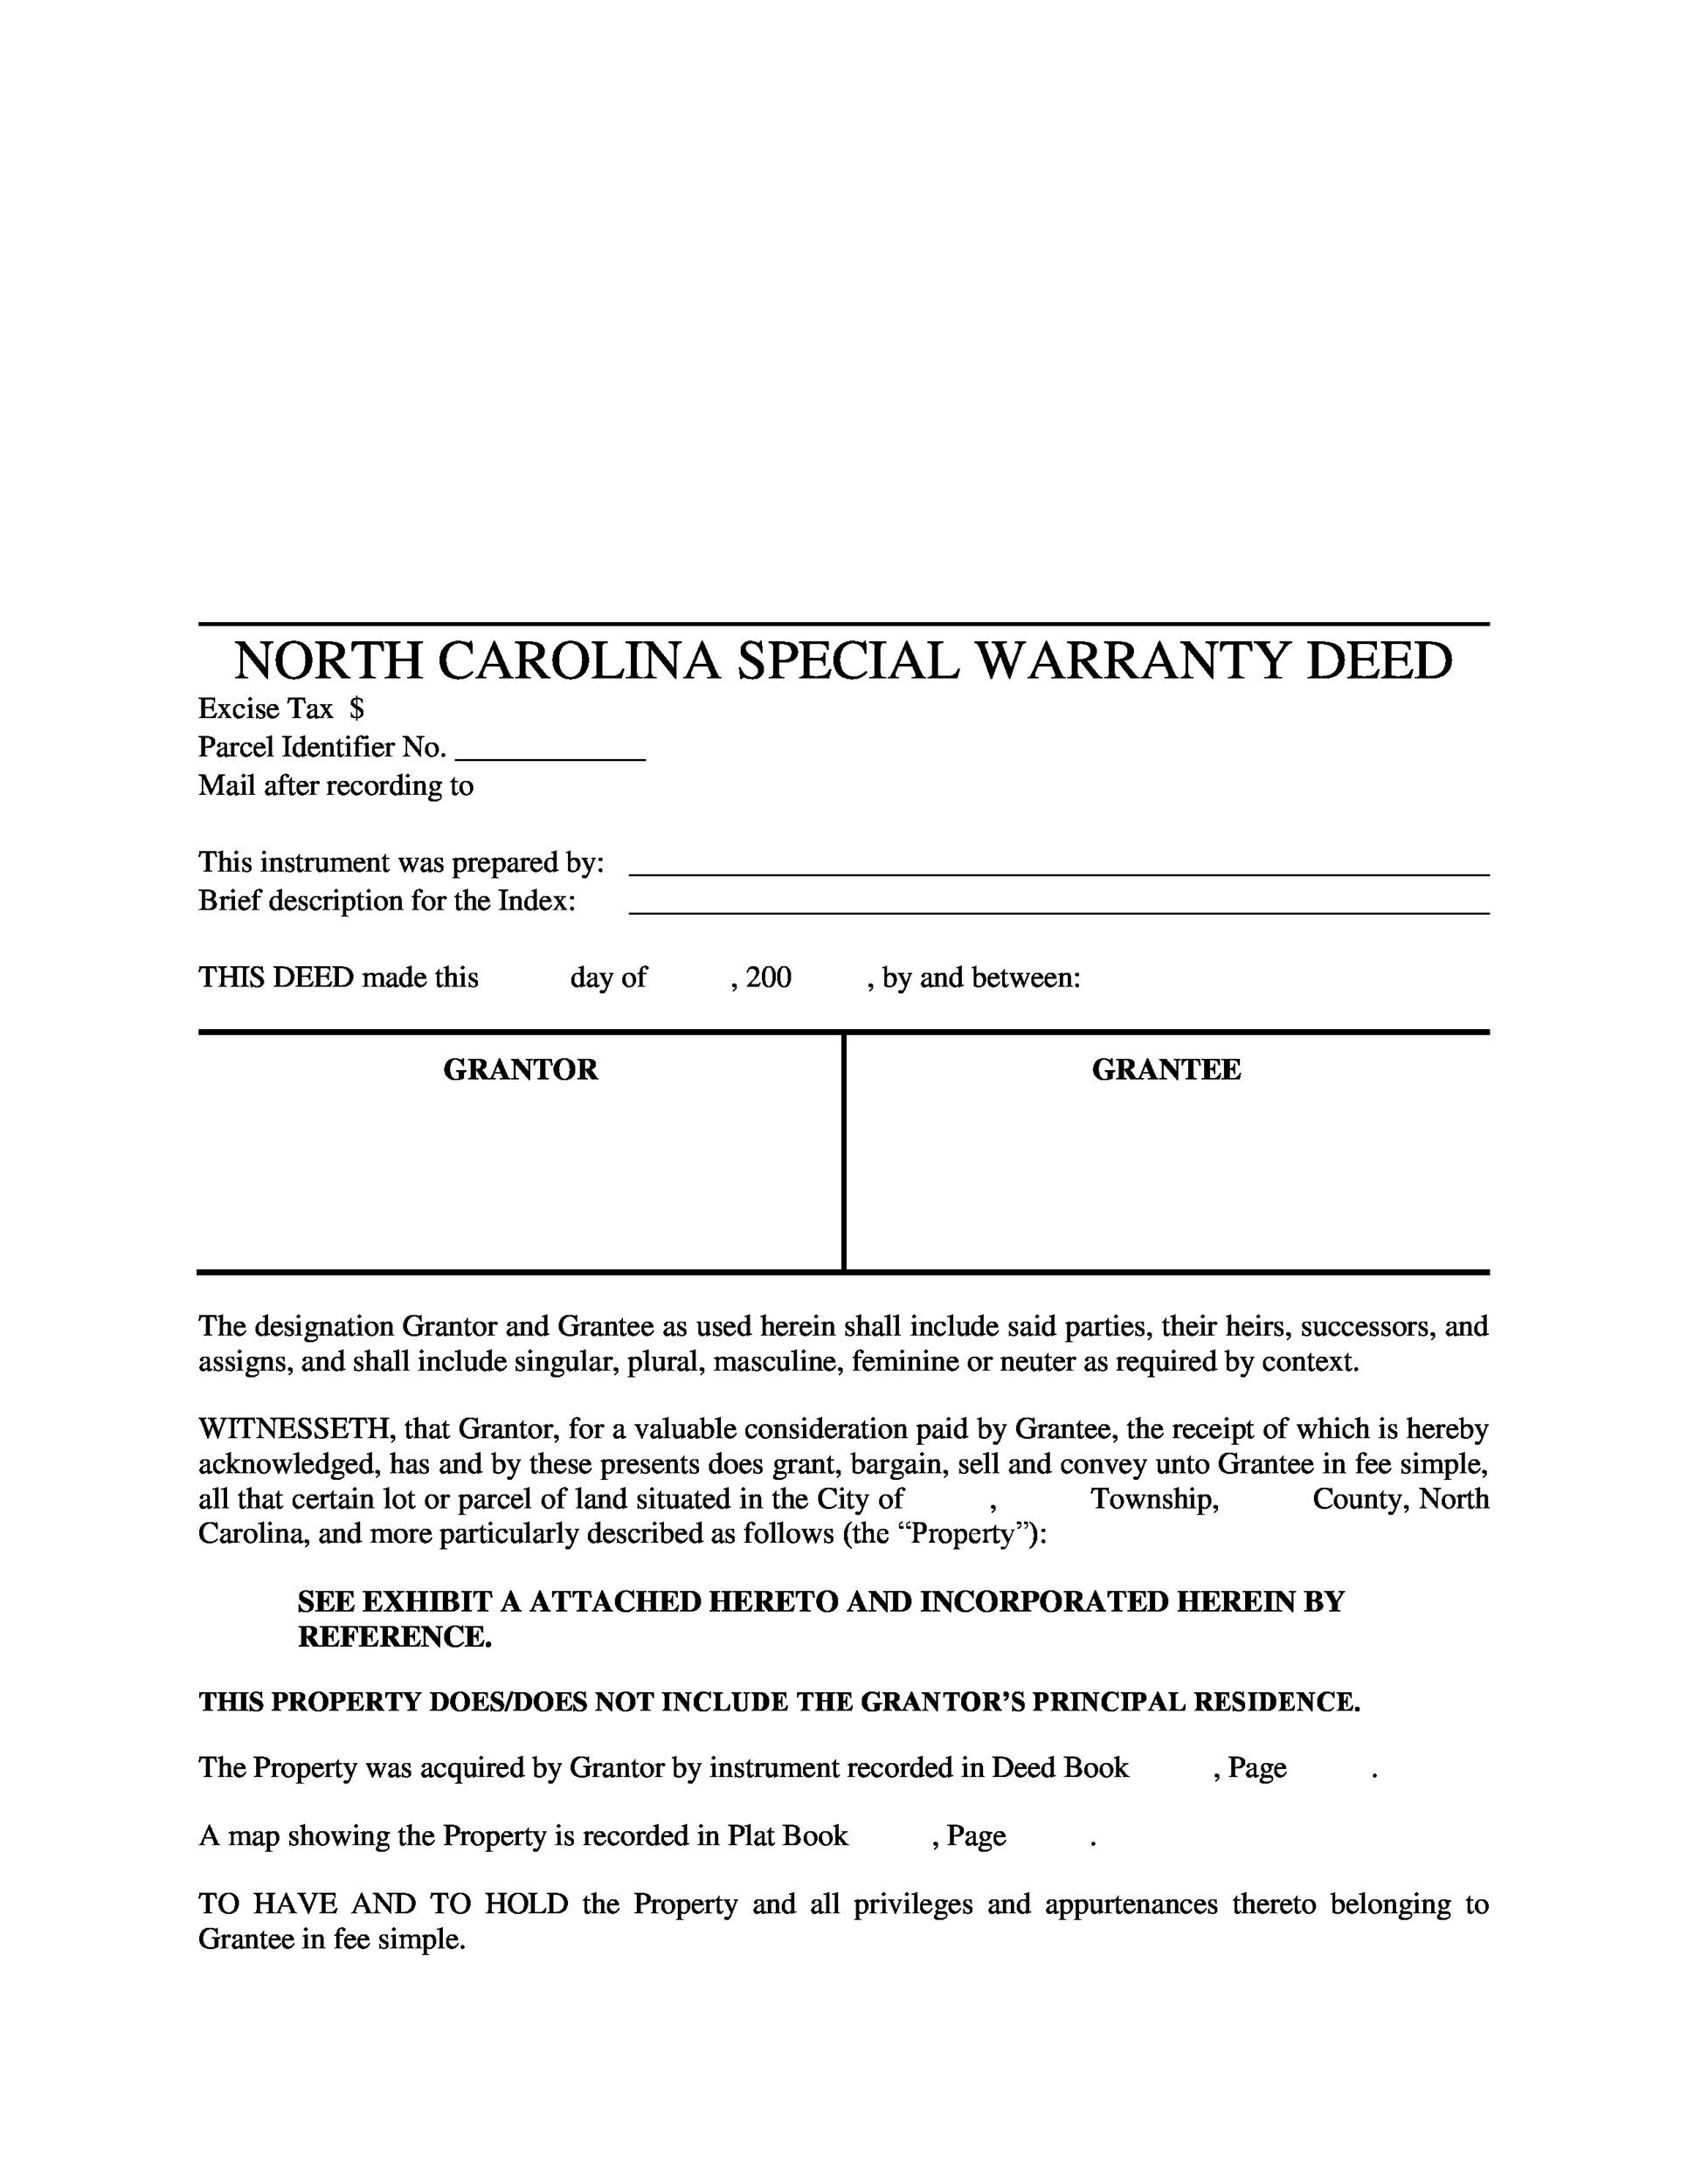 Free Warranty deed template 38